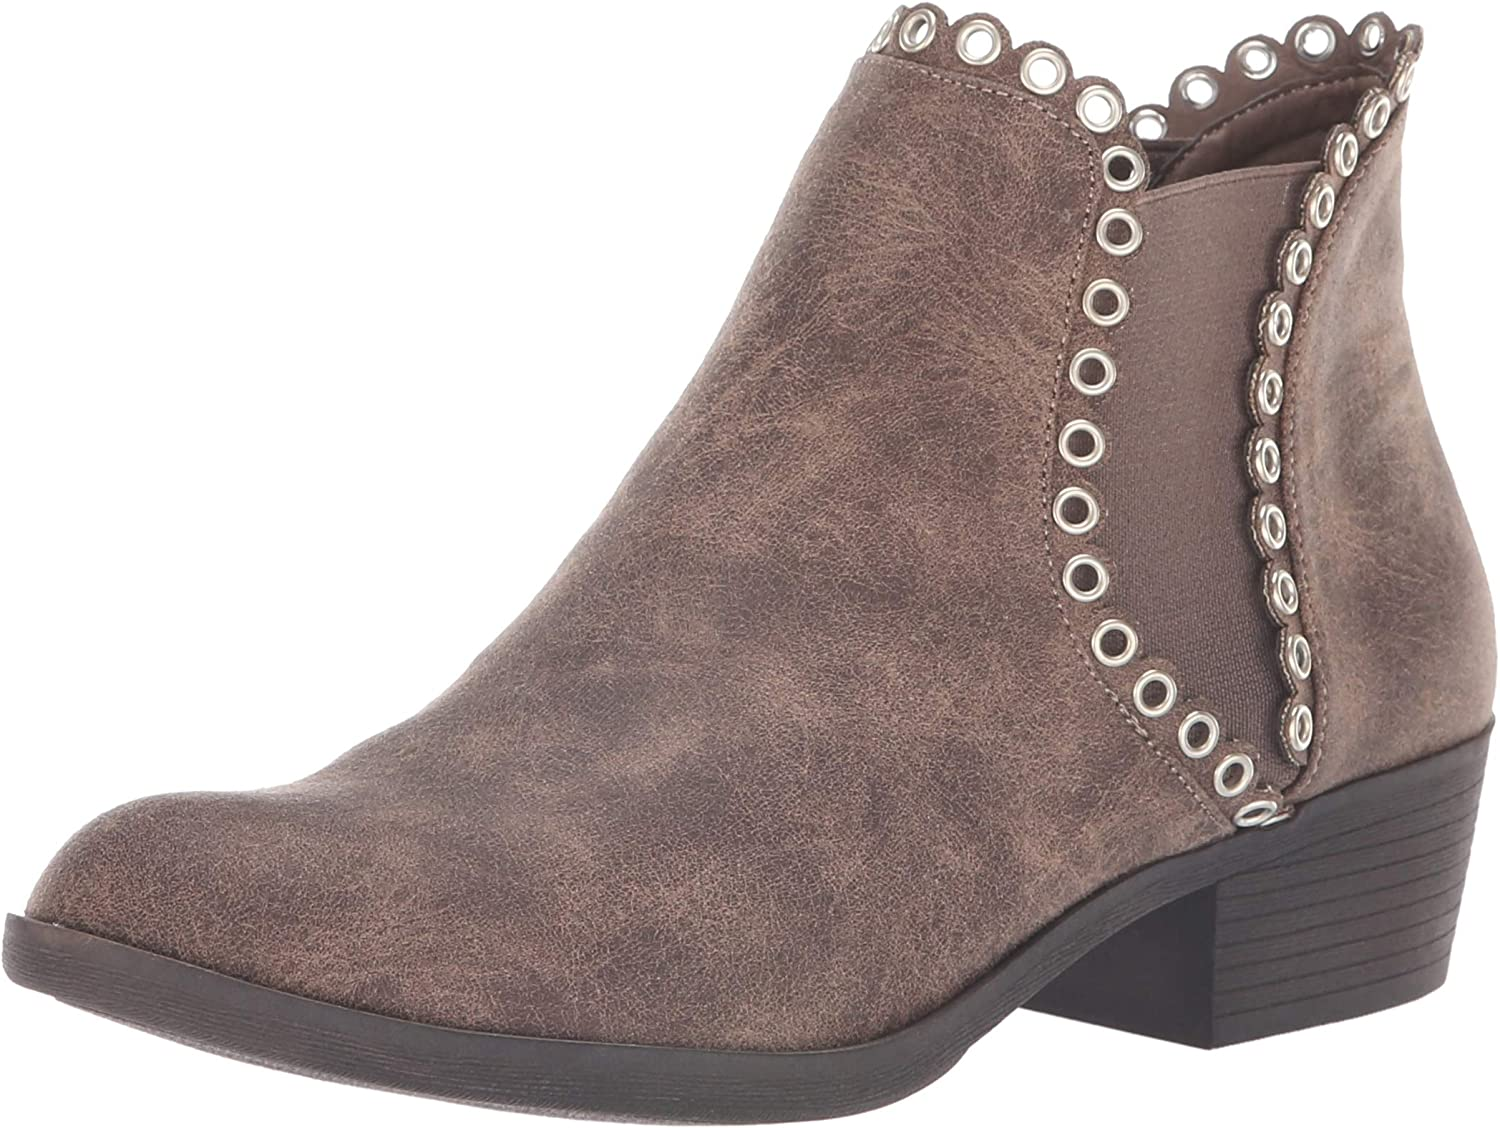 Sbicca Women's Marjorie Ankle Boot